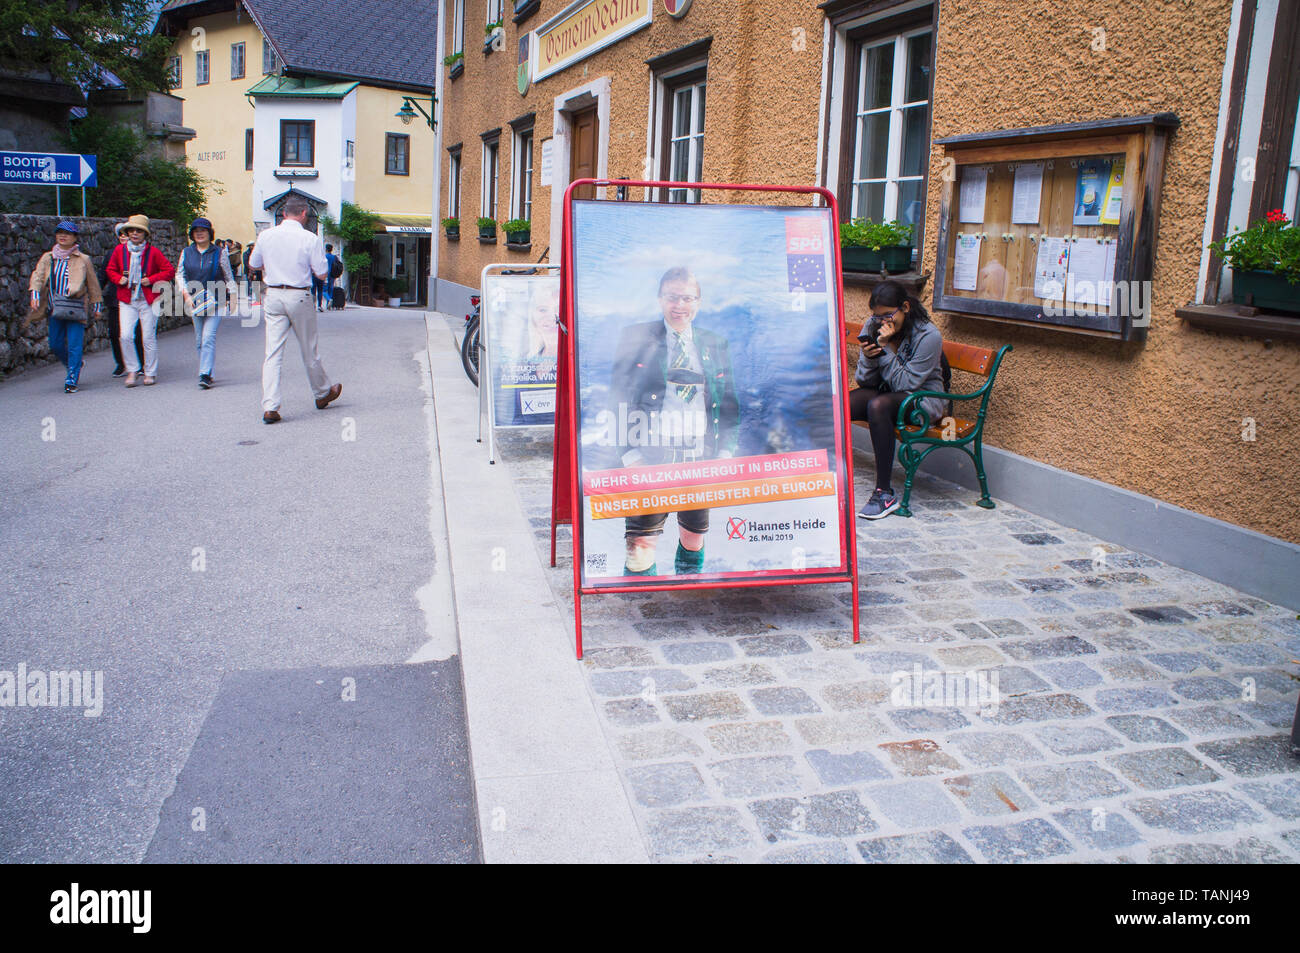 Poster of SPO, Hannes Heide, and OVP, Angelika Winzig, pre-election campaign for 2019 European Parliament election in Hallstatt, Austria, May 24, 2019 - Stock Image